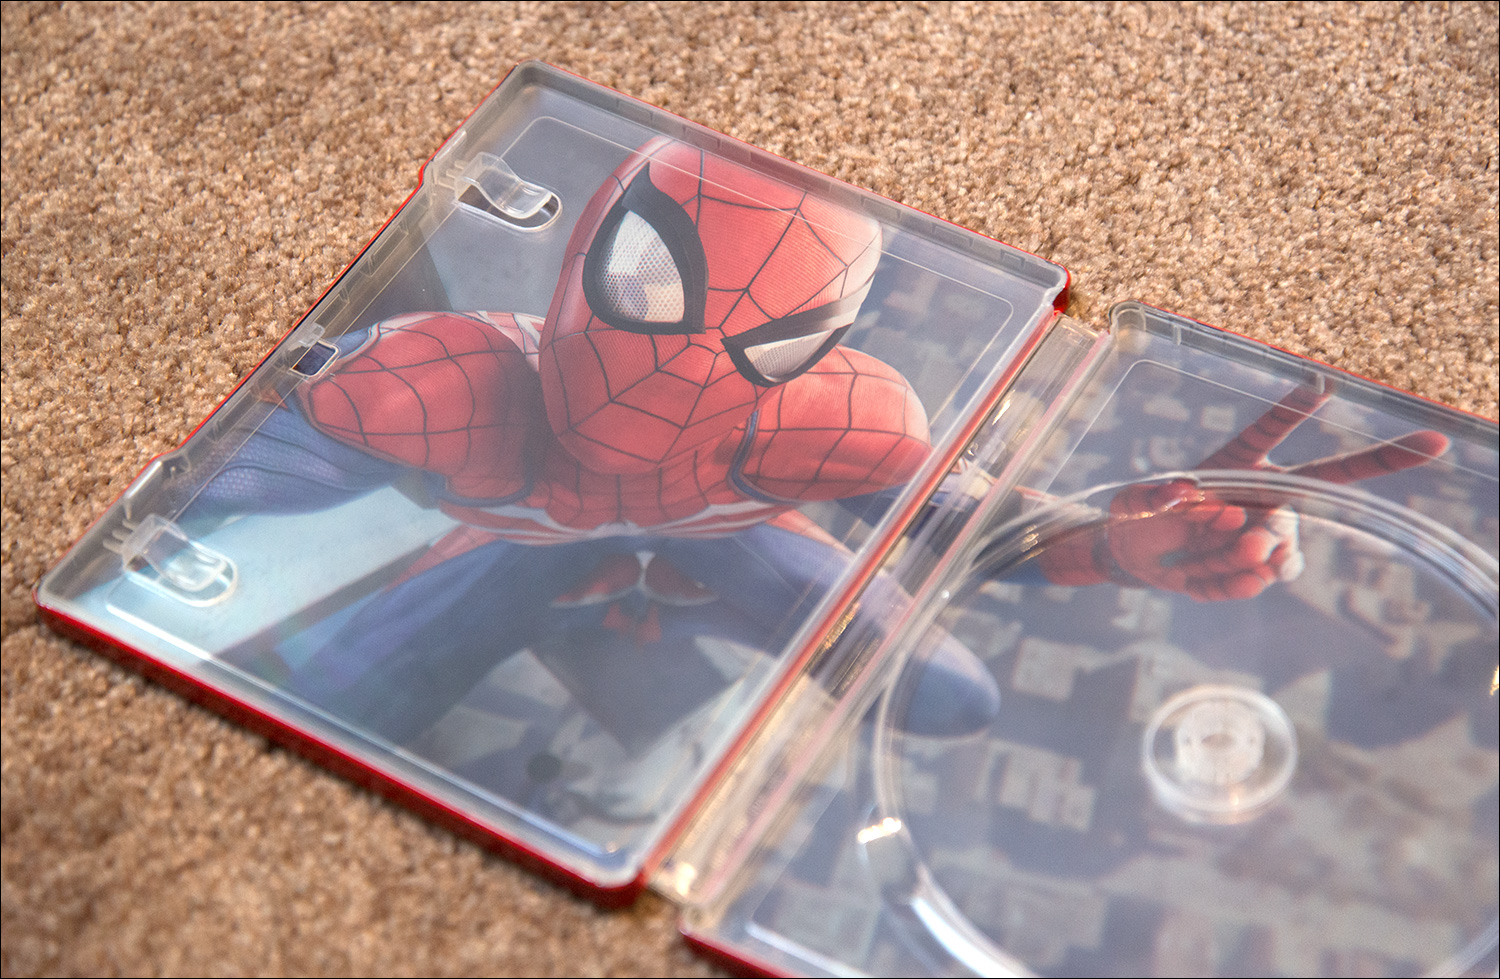 Spider-Man-Special-Edition-Steel-Book-Inside-frikigamers.com